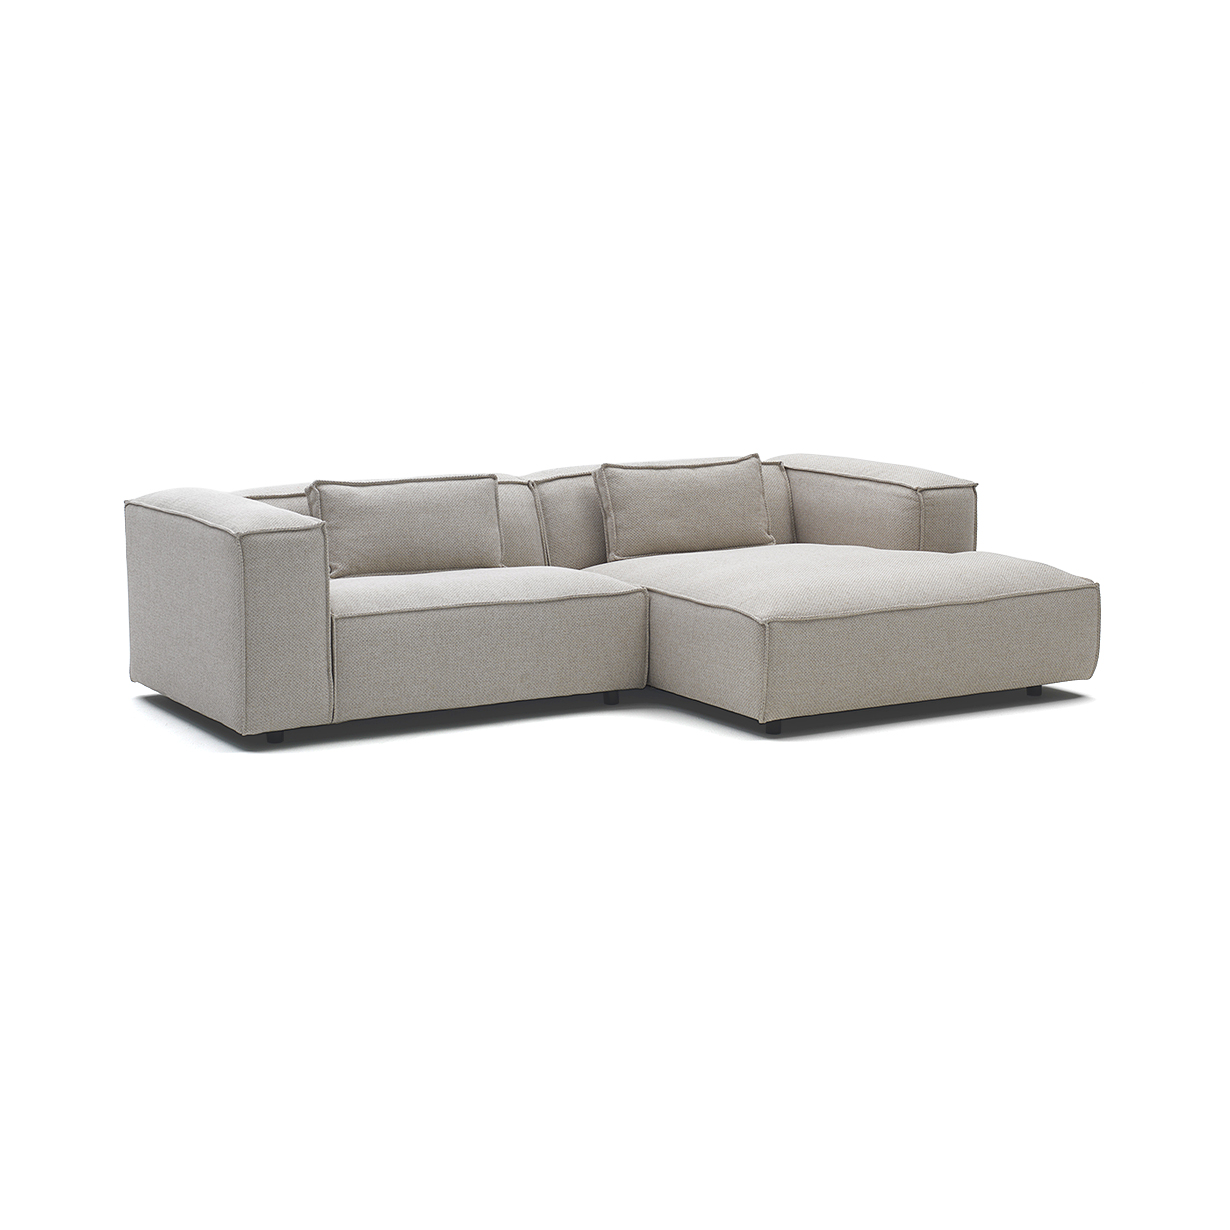 fest amsterdam sofa dunbar best value sofas polvere three seater with chaise longue l 164 cm by lovethesign